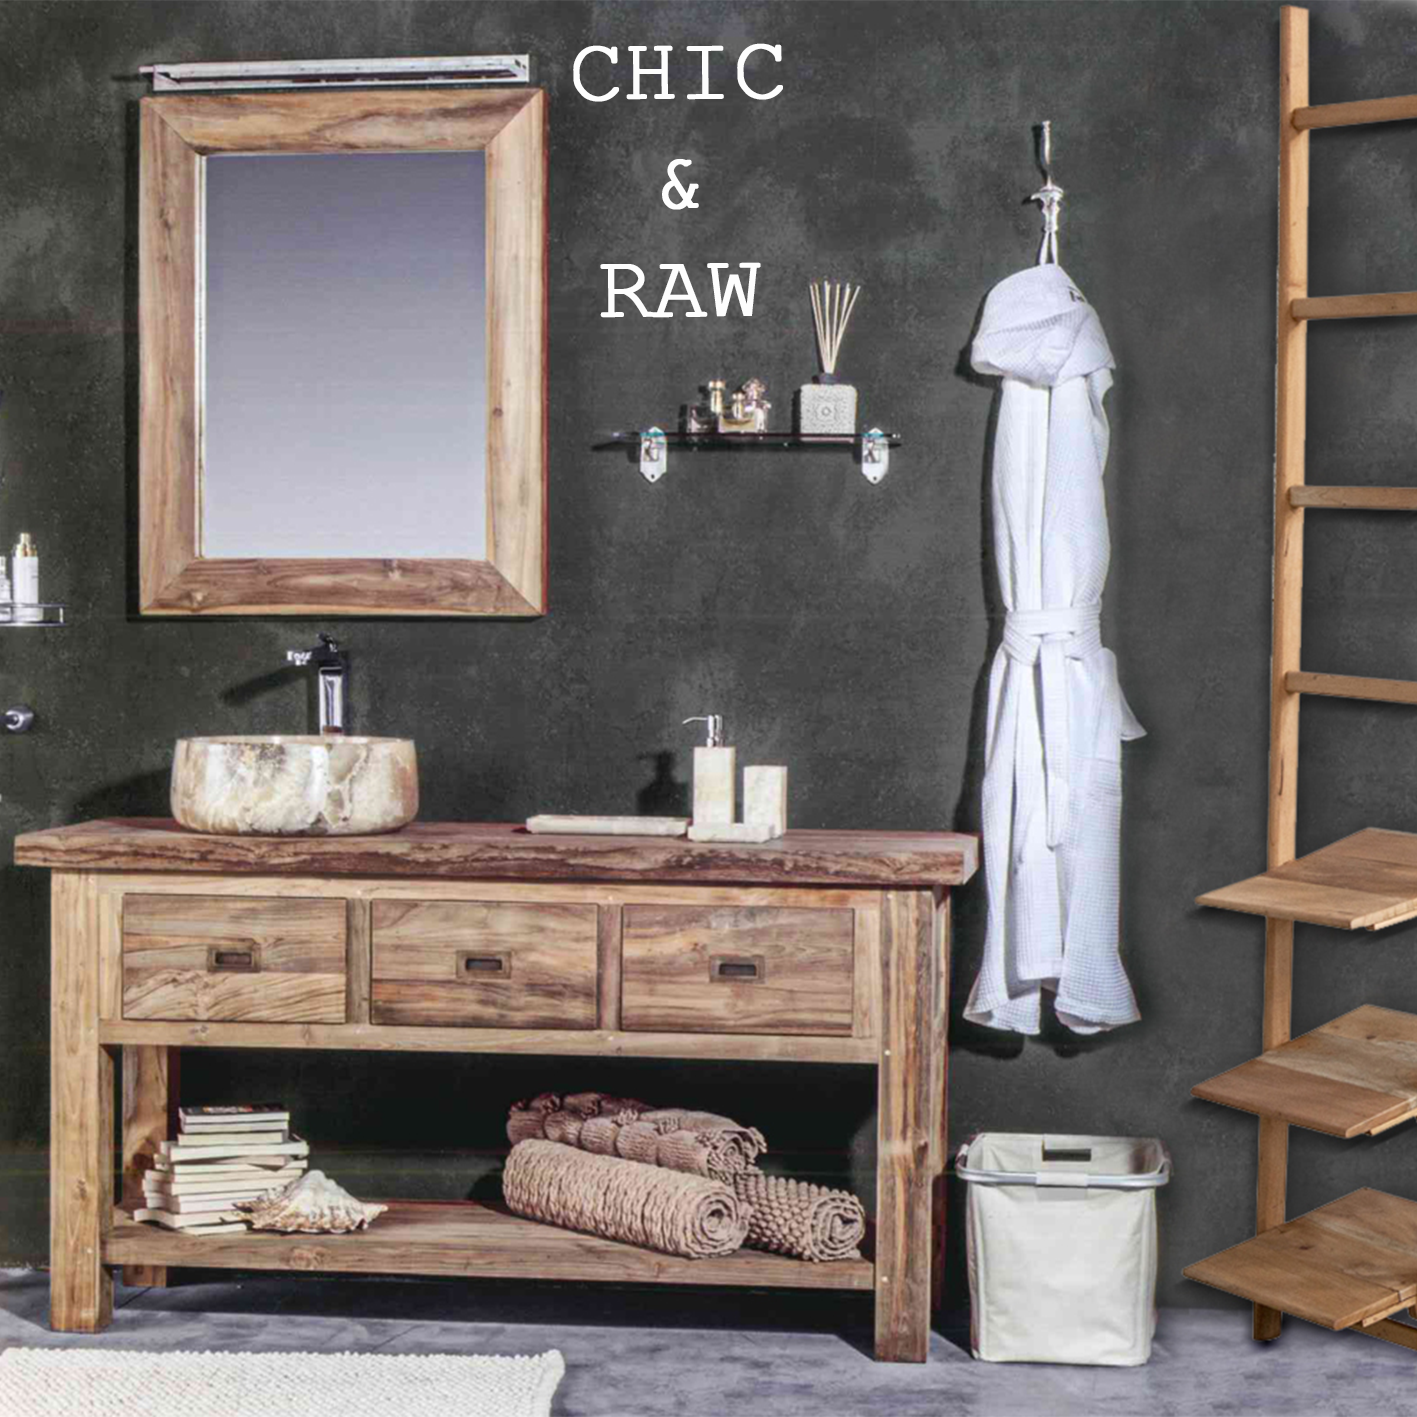 Makeyourhome il bagno in stile chic raw - Bagno industrial ...